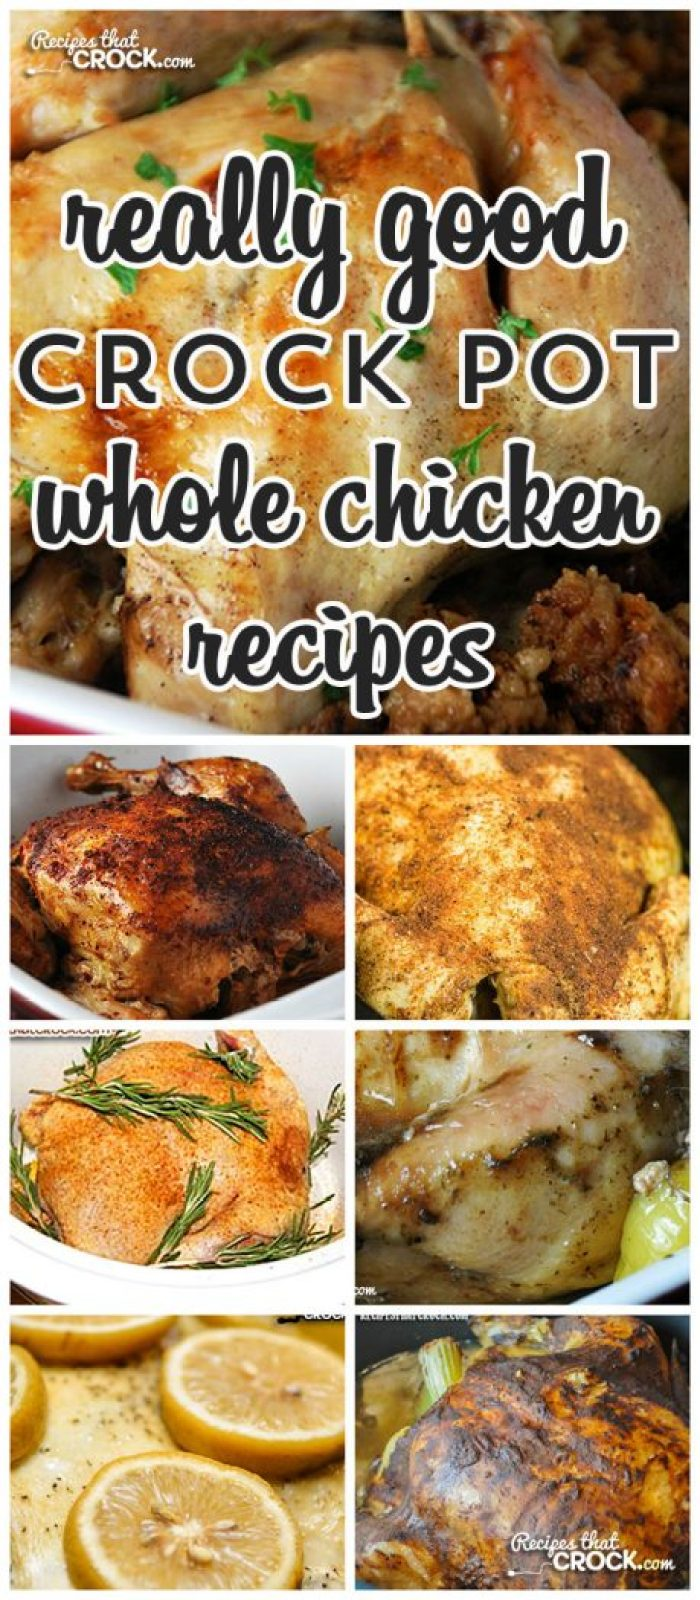 Have you ever cooked a whole chicken in your crock pot? Cris and I love it! So we thought we would put together a list of some Really Good Whole Chicken Recipes just for you!